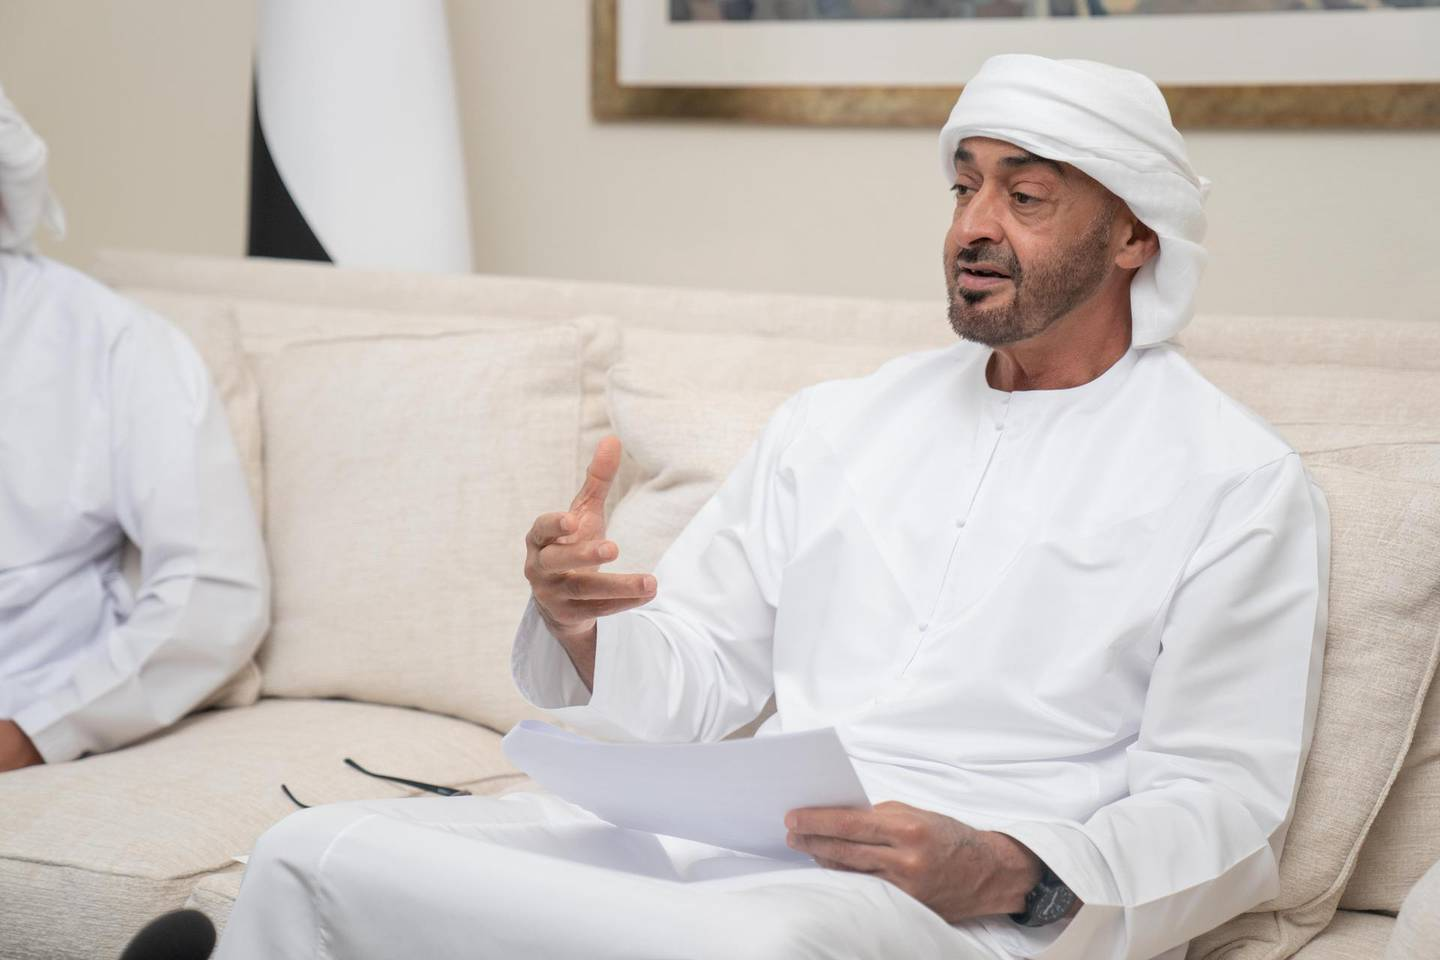 """ABU DHABI, UNITED ARAB EMIRATES - May 03, 2020: HH Sheikh Mohamed bin Zayed Al Nahyan, Crown Prince of Abu Dhabi and Deputy Supreme Commander of the UAE Armed Forces, participates in an online lecture by HE Mariam Mohamed Saeed Hareb Al Mehairi, UAE Minister of State for Food Security, titled """" Nourishing the Nation: Food Security in the UAE """". The lecture was broadcast on Al Emarat Channel as part of the Ramadan lecture series of Majlis Mohamed bin Zayed.   ( Rashed Al Mansoori / Ministry of Presidential Affairs ) ---"""